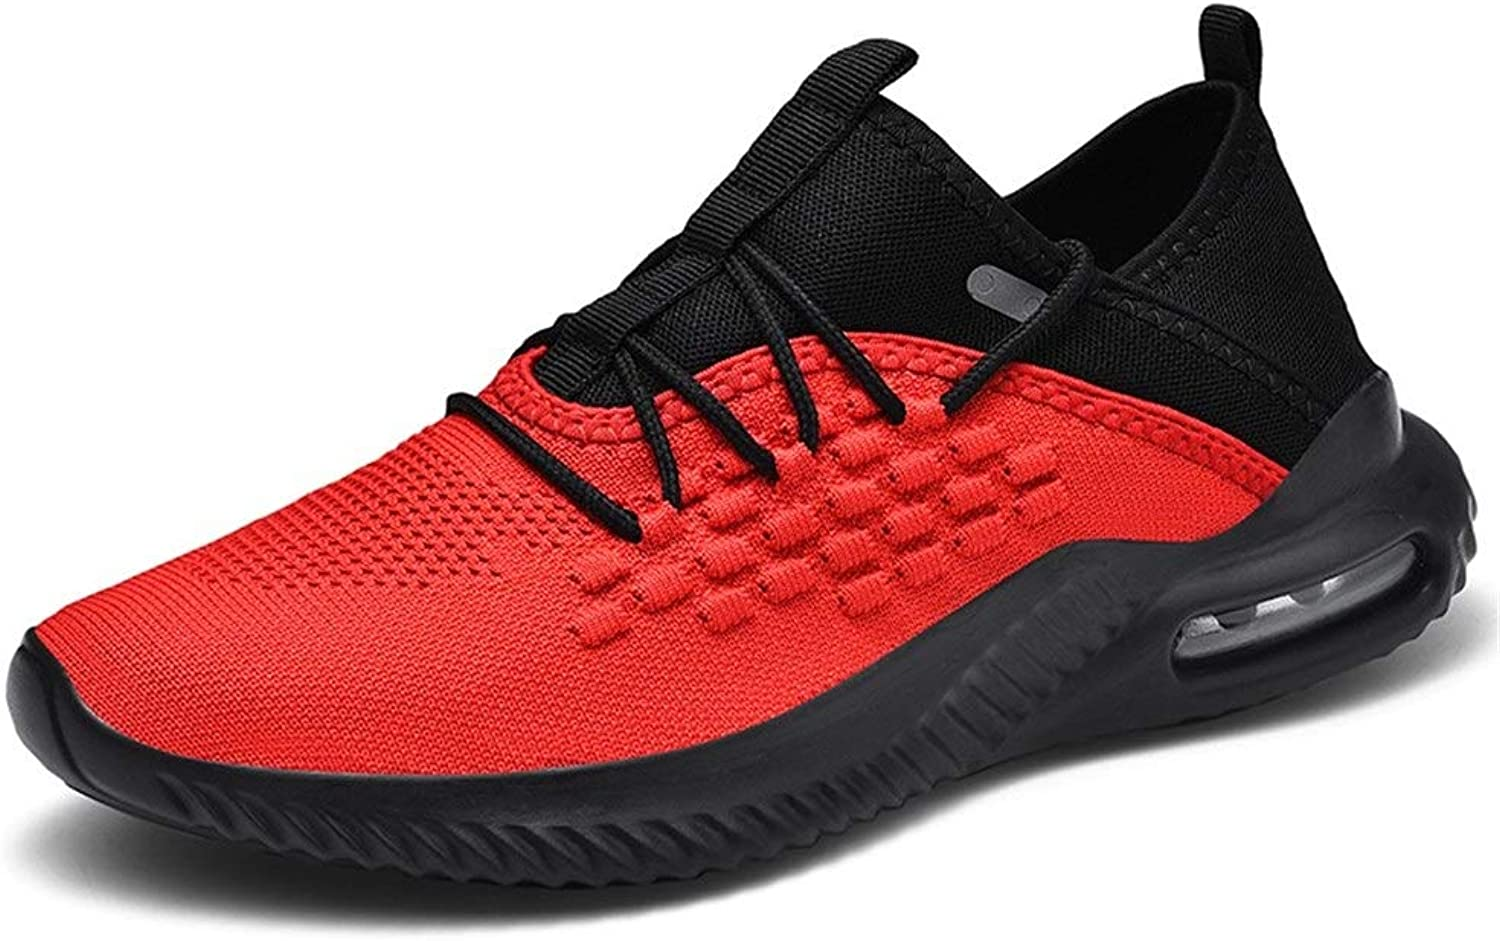 Outdoor Runing Breathable Athletic shoes Non-slip Men Sports shoes Lace Up Style Mesh Material Hollow Air Cushion Outsole Lightsome Soft Fashionable Comfortable ( color   Black Red , Size   9 UK )